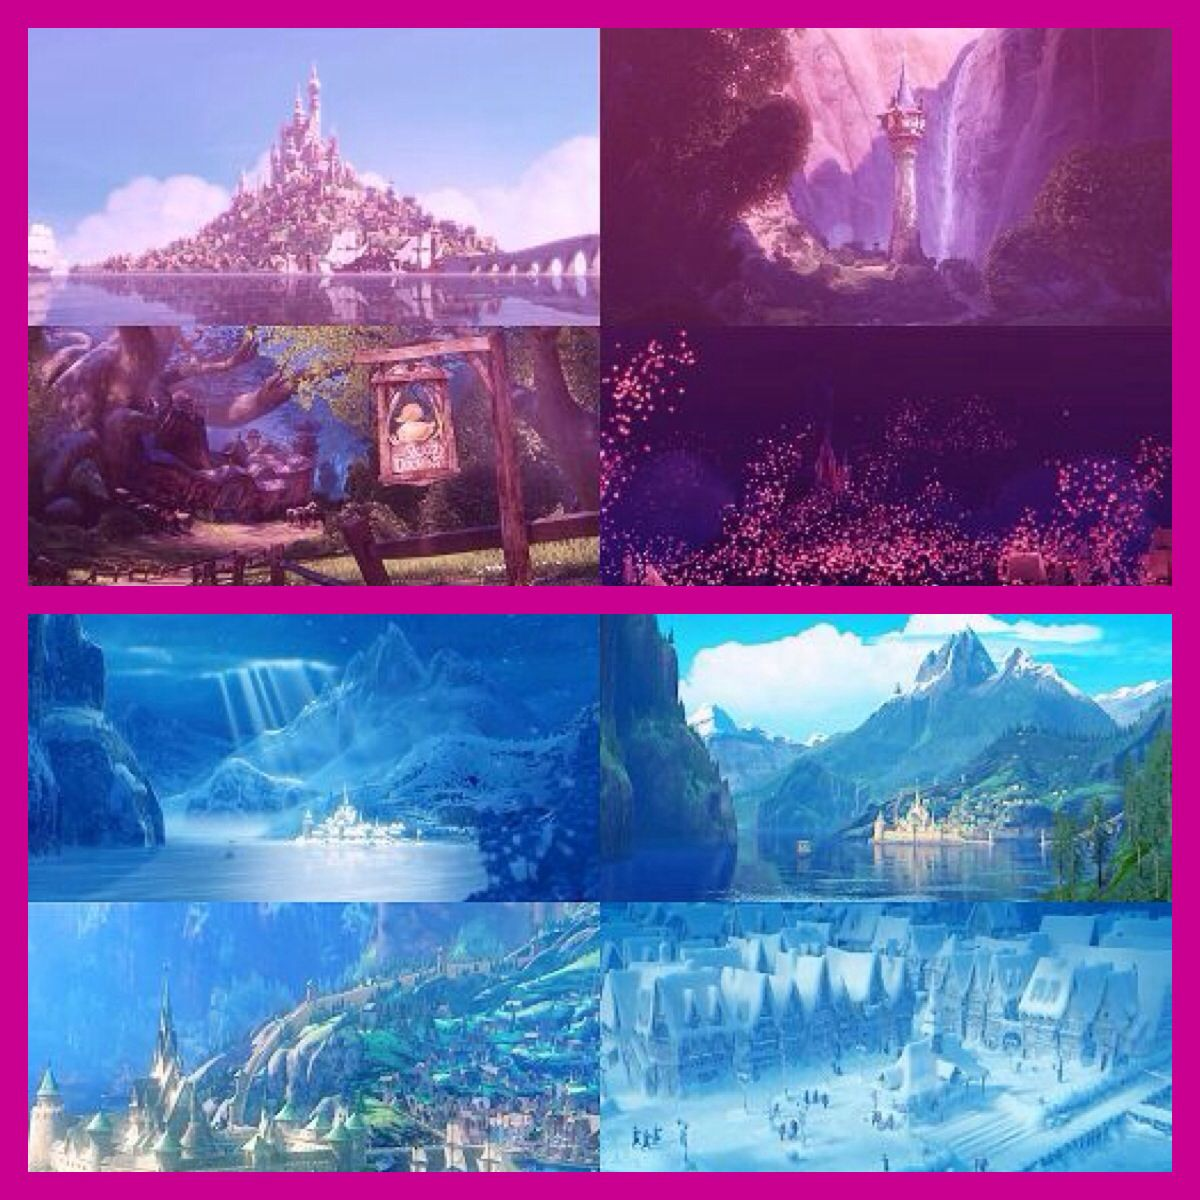 Crossovers King And Queen: Princess Rapunzel's Kingdom